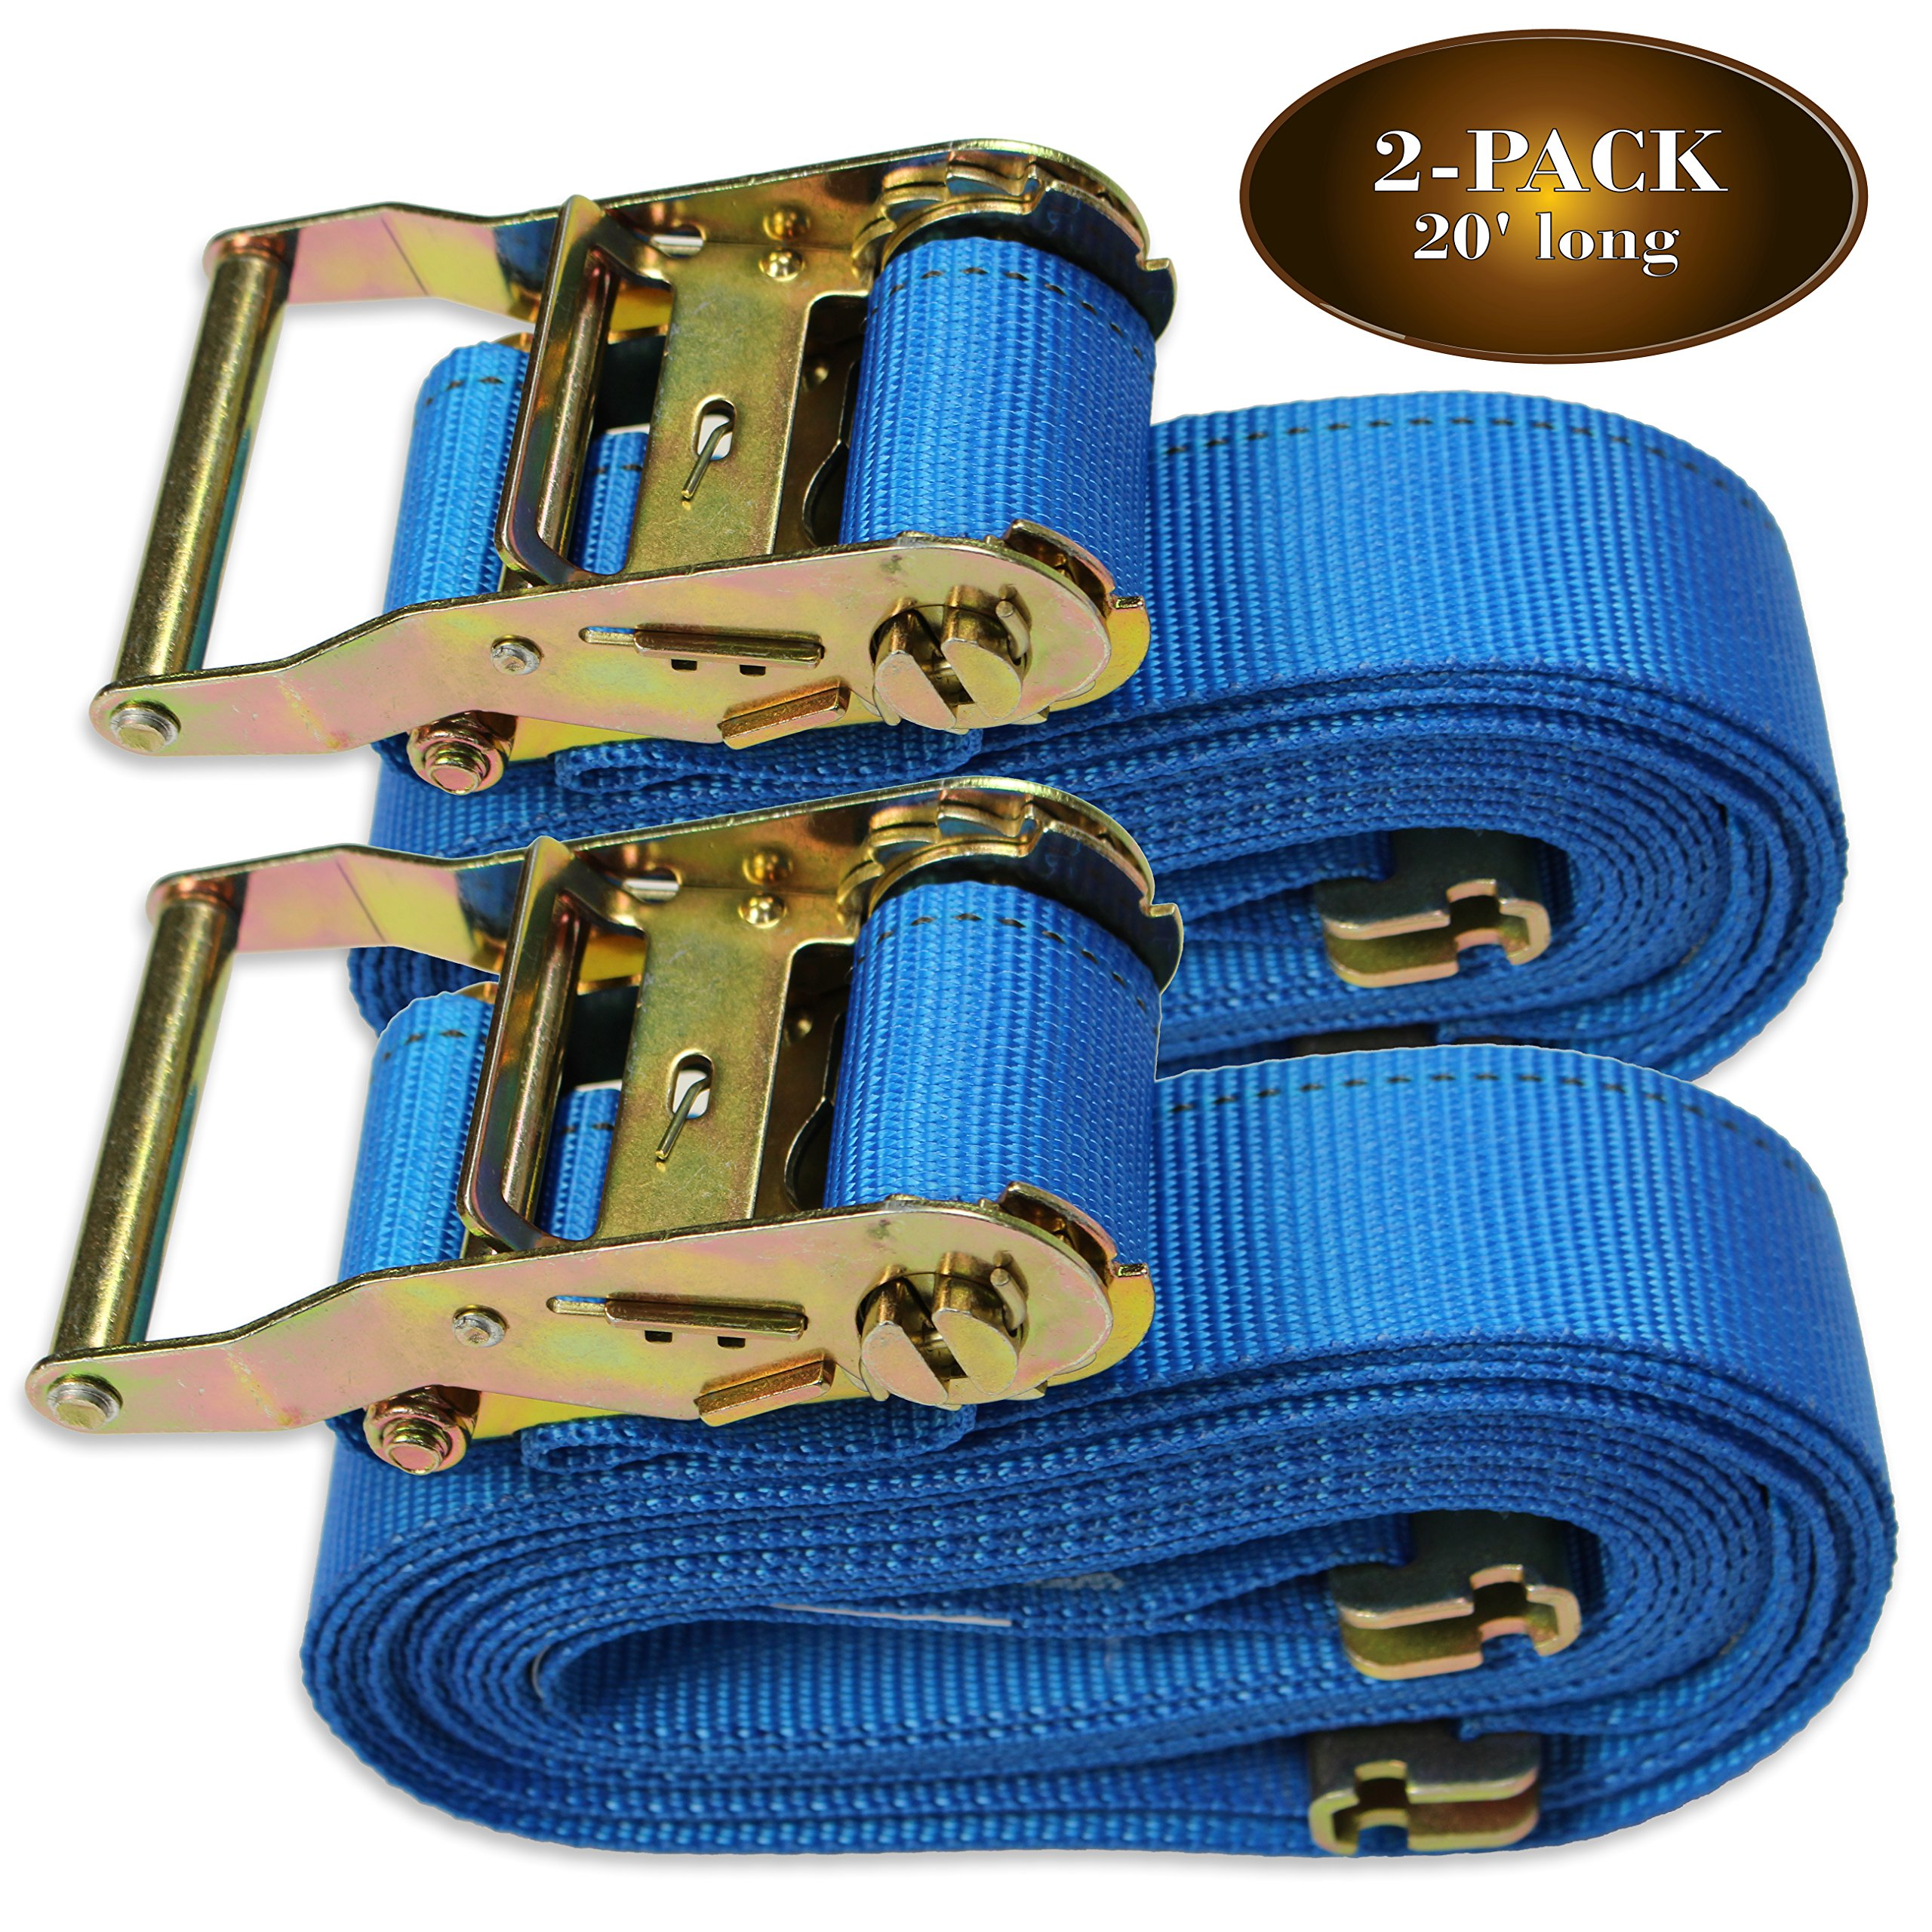 Two 2'' x 20' E Track Tie-Down Ratchet Straps | Heavy Duty Ratcheting Cargo Strap TieDowns w/ETrack Spring Fittings & Ratchets, Polyester Webbing | Secure Motorcycles, Pickup, Truck, Trailer Loads by DC Cargo Mall